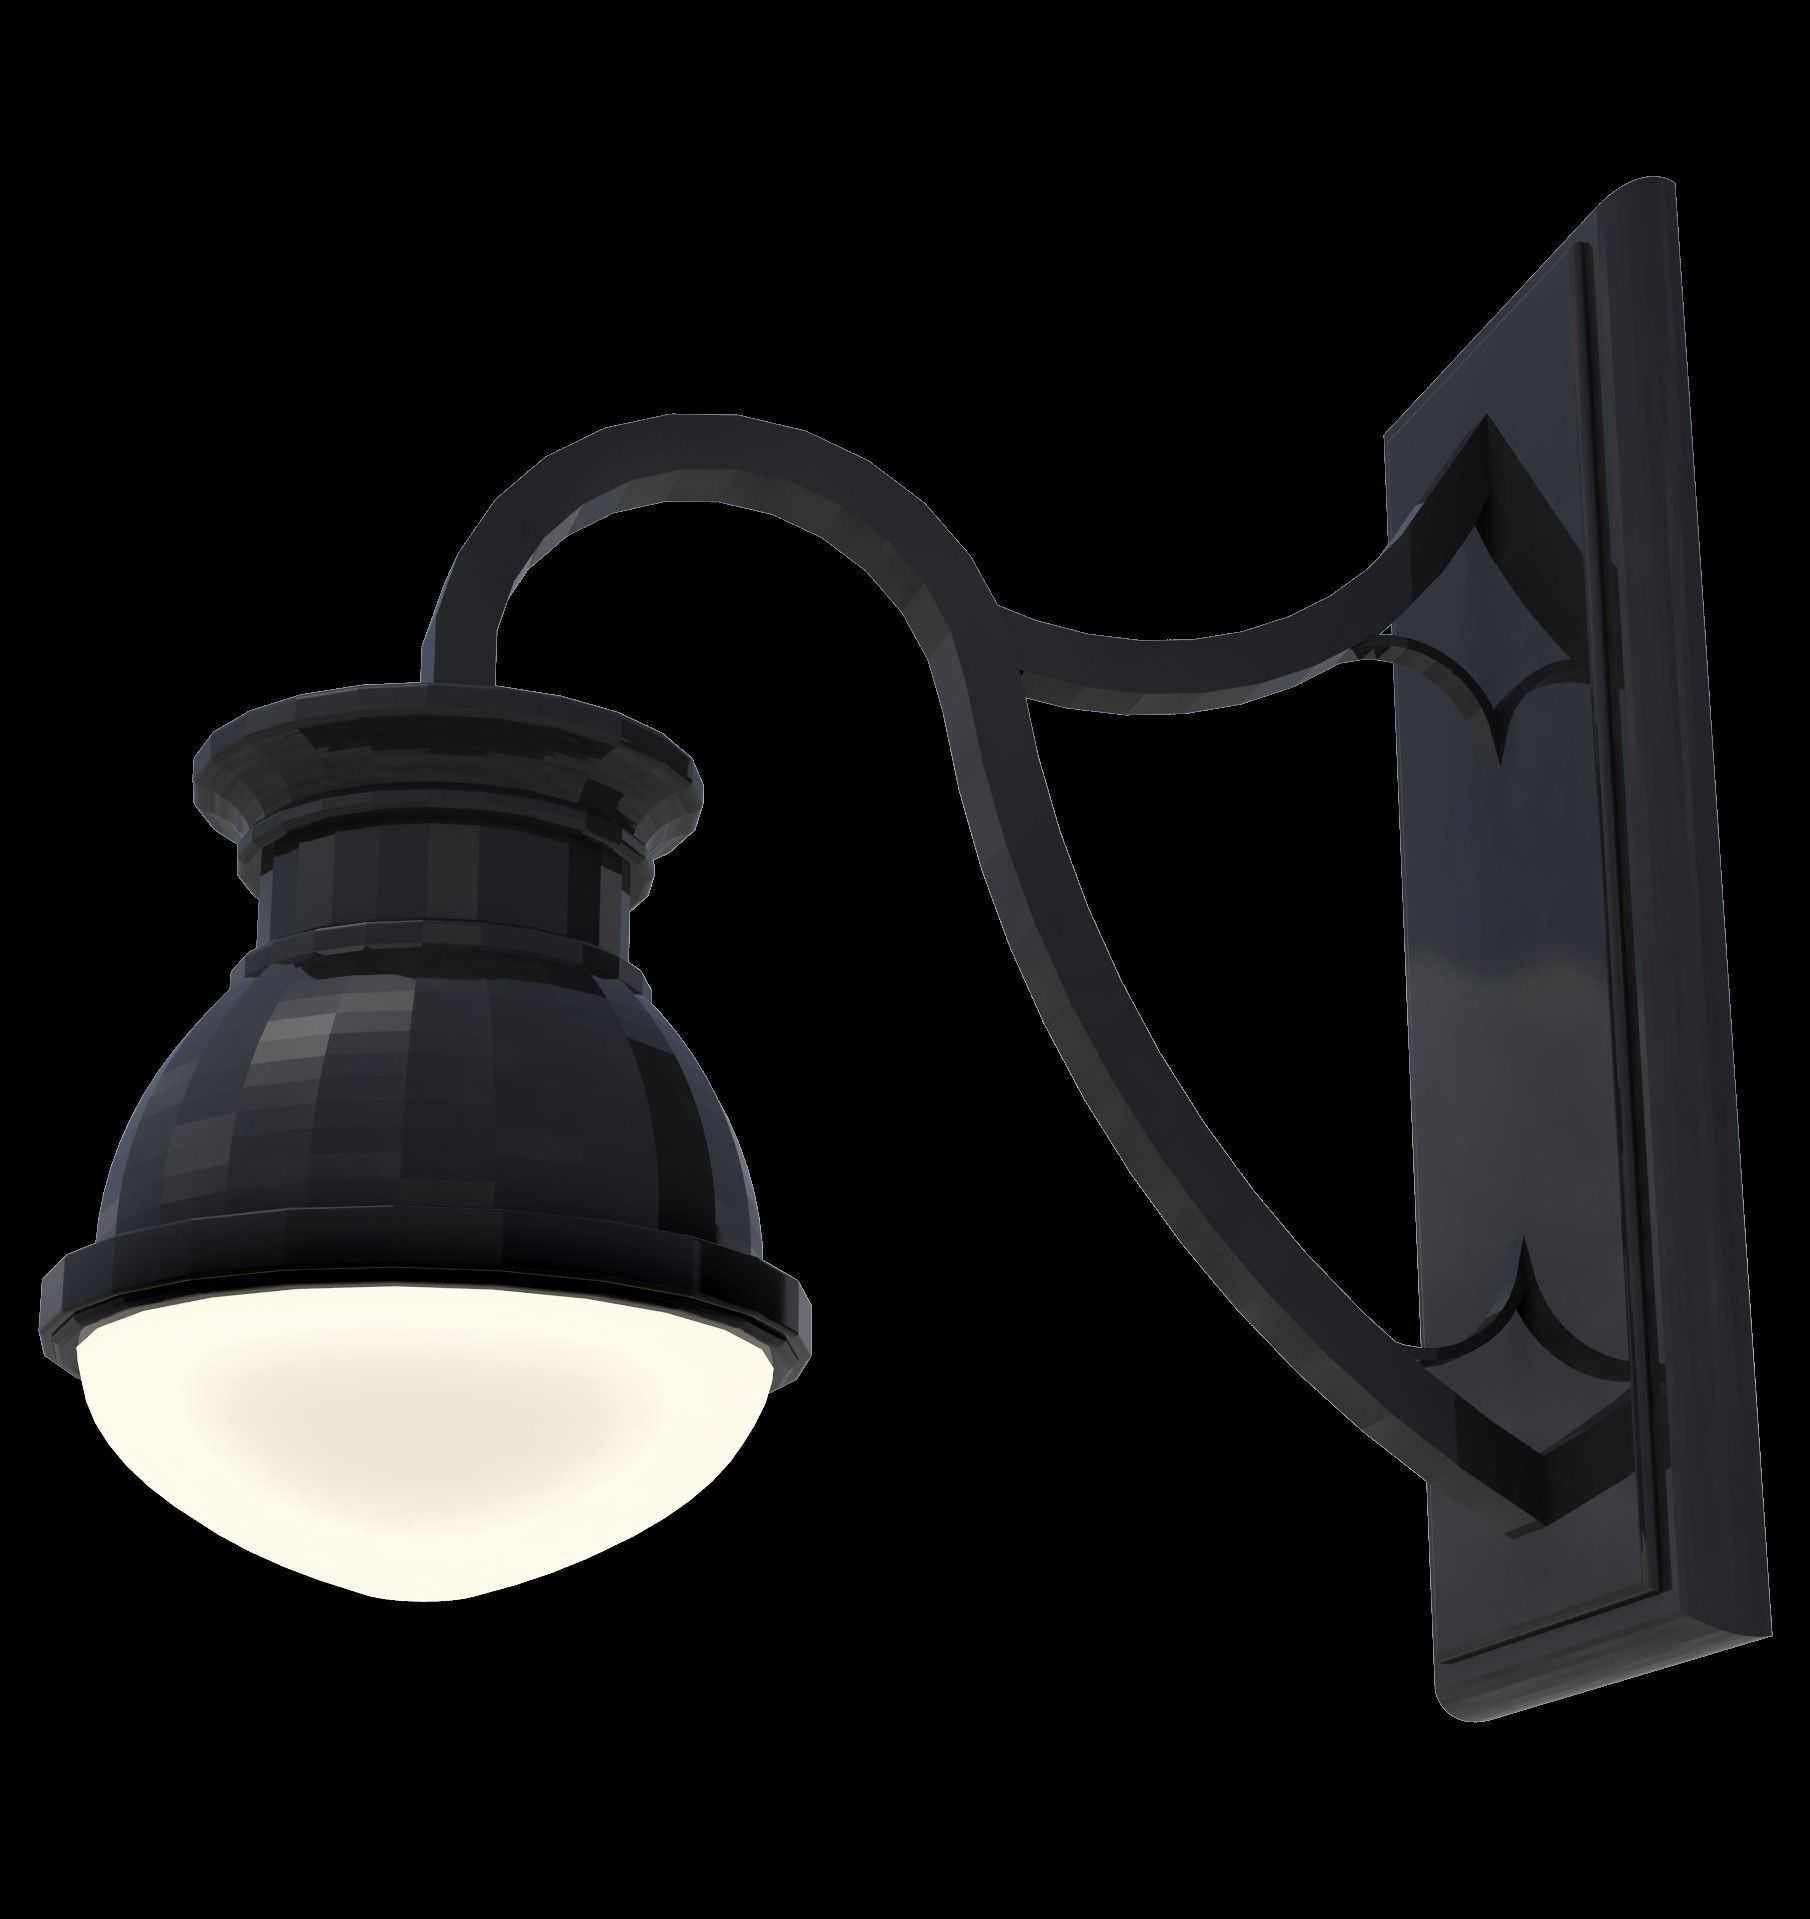 Wall hung small light fixture architectural scene light outdoor